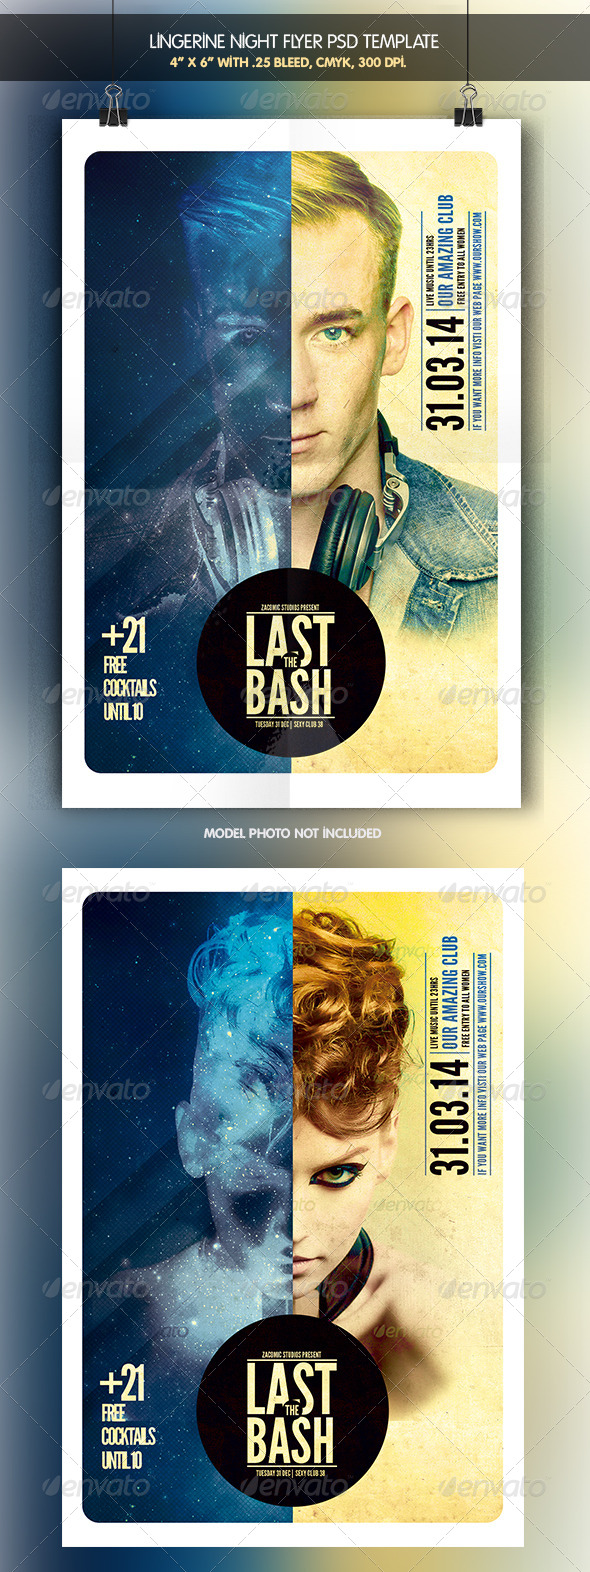 GraphicRiver Last Bash Flyer Template 7046689